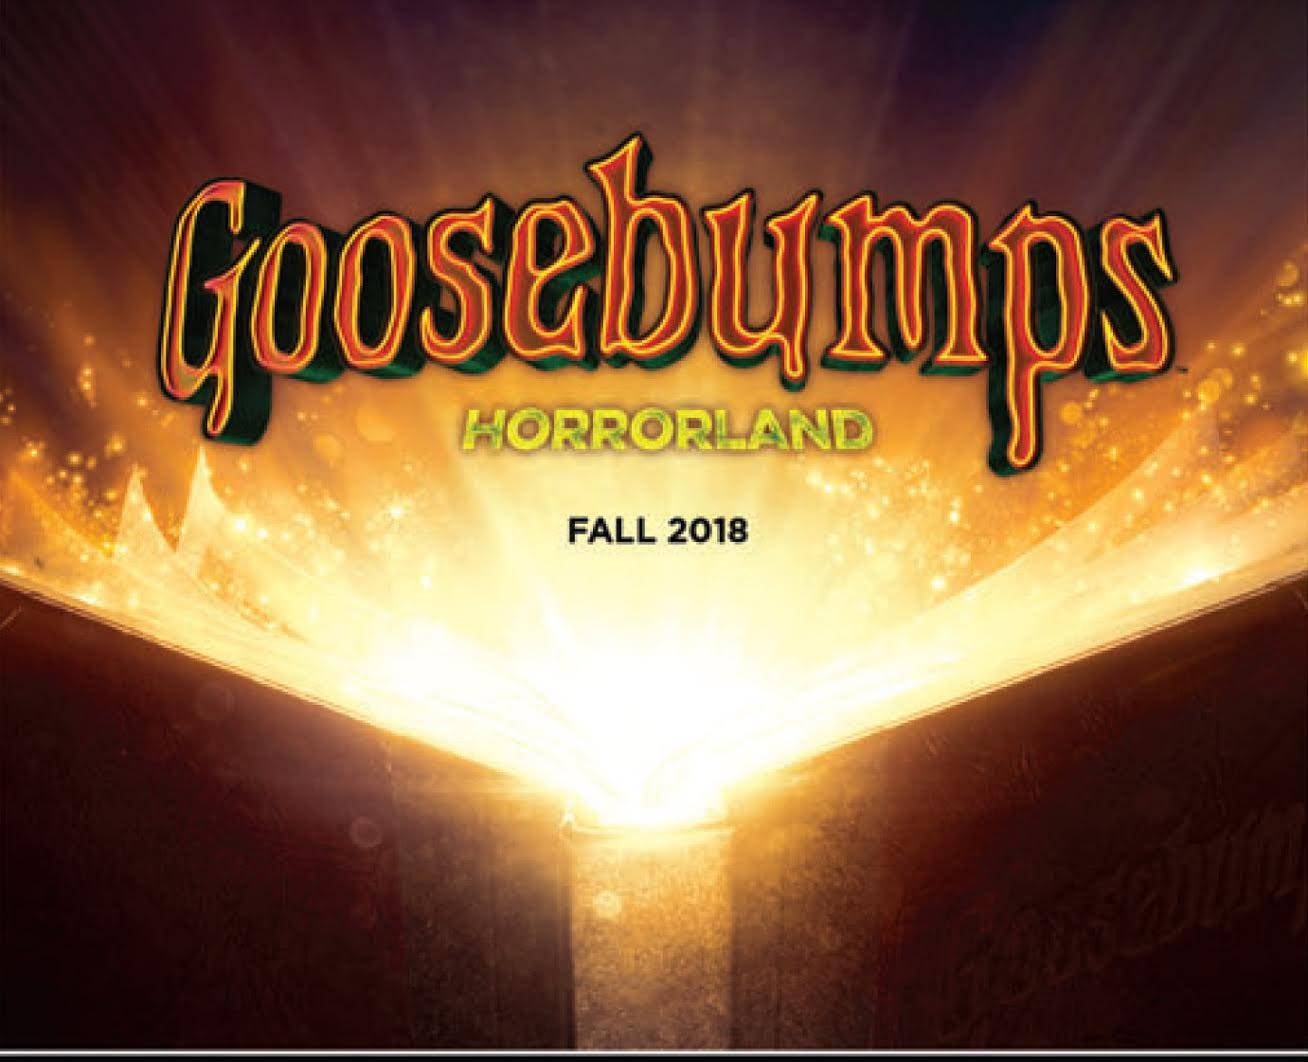 Goosebumps 2 Titled Horrorland